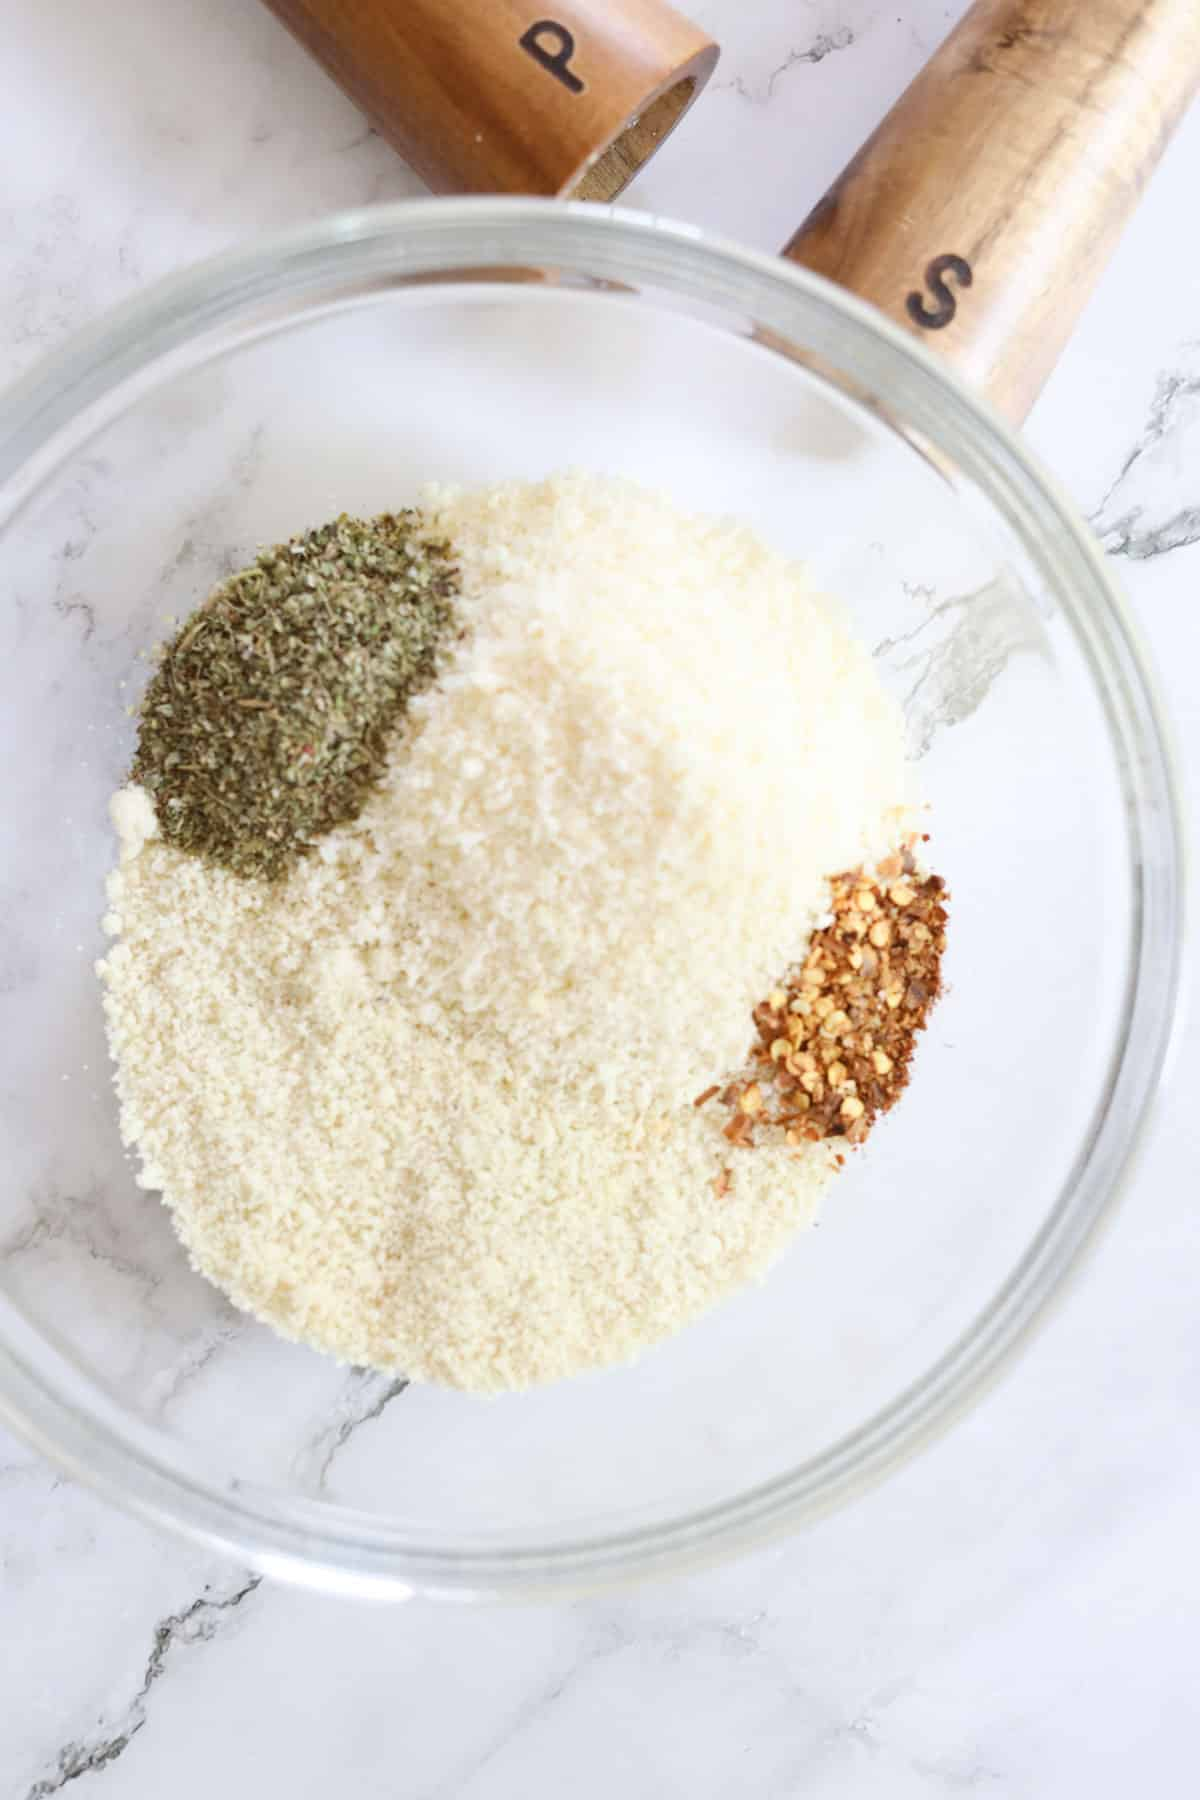 adding dry bread crumb ingredients to a bowl